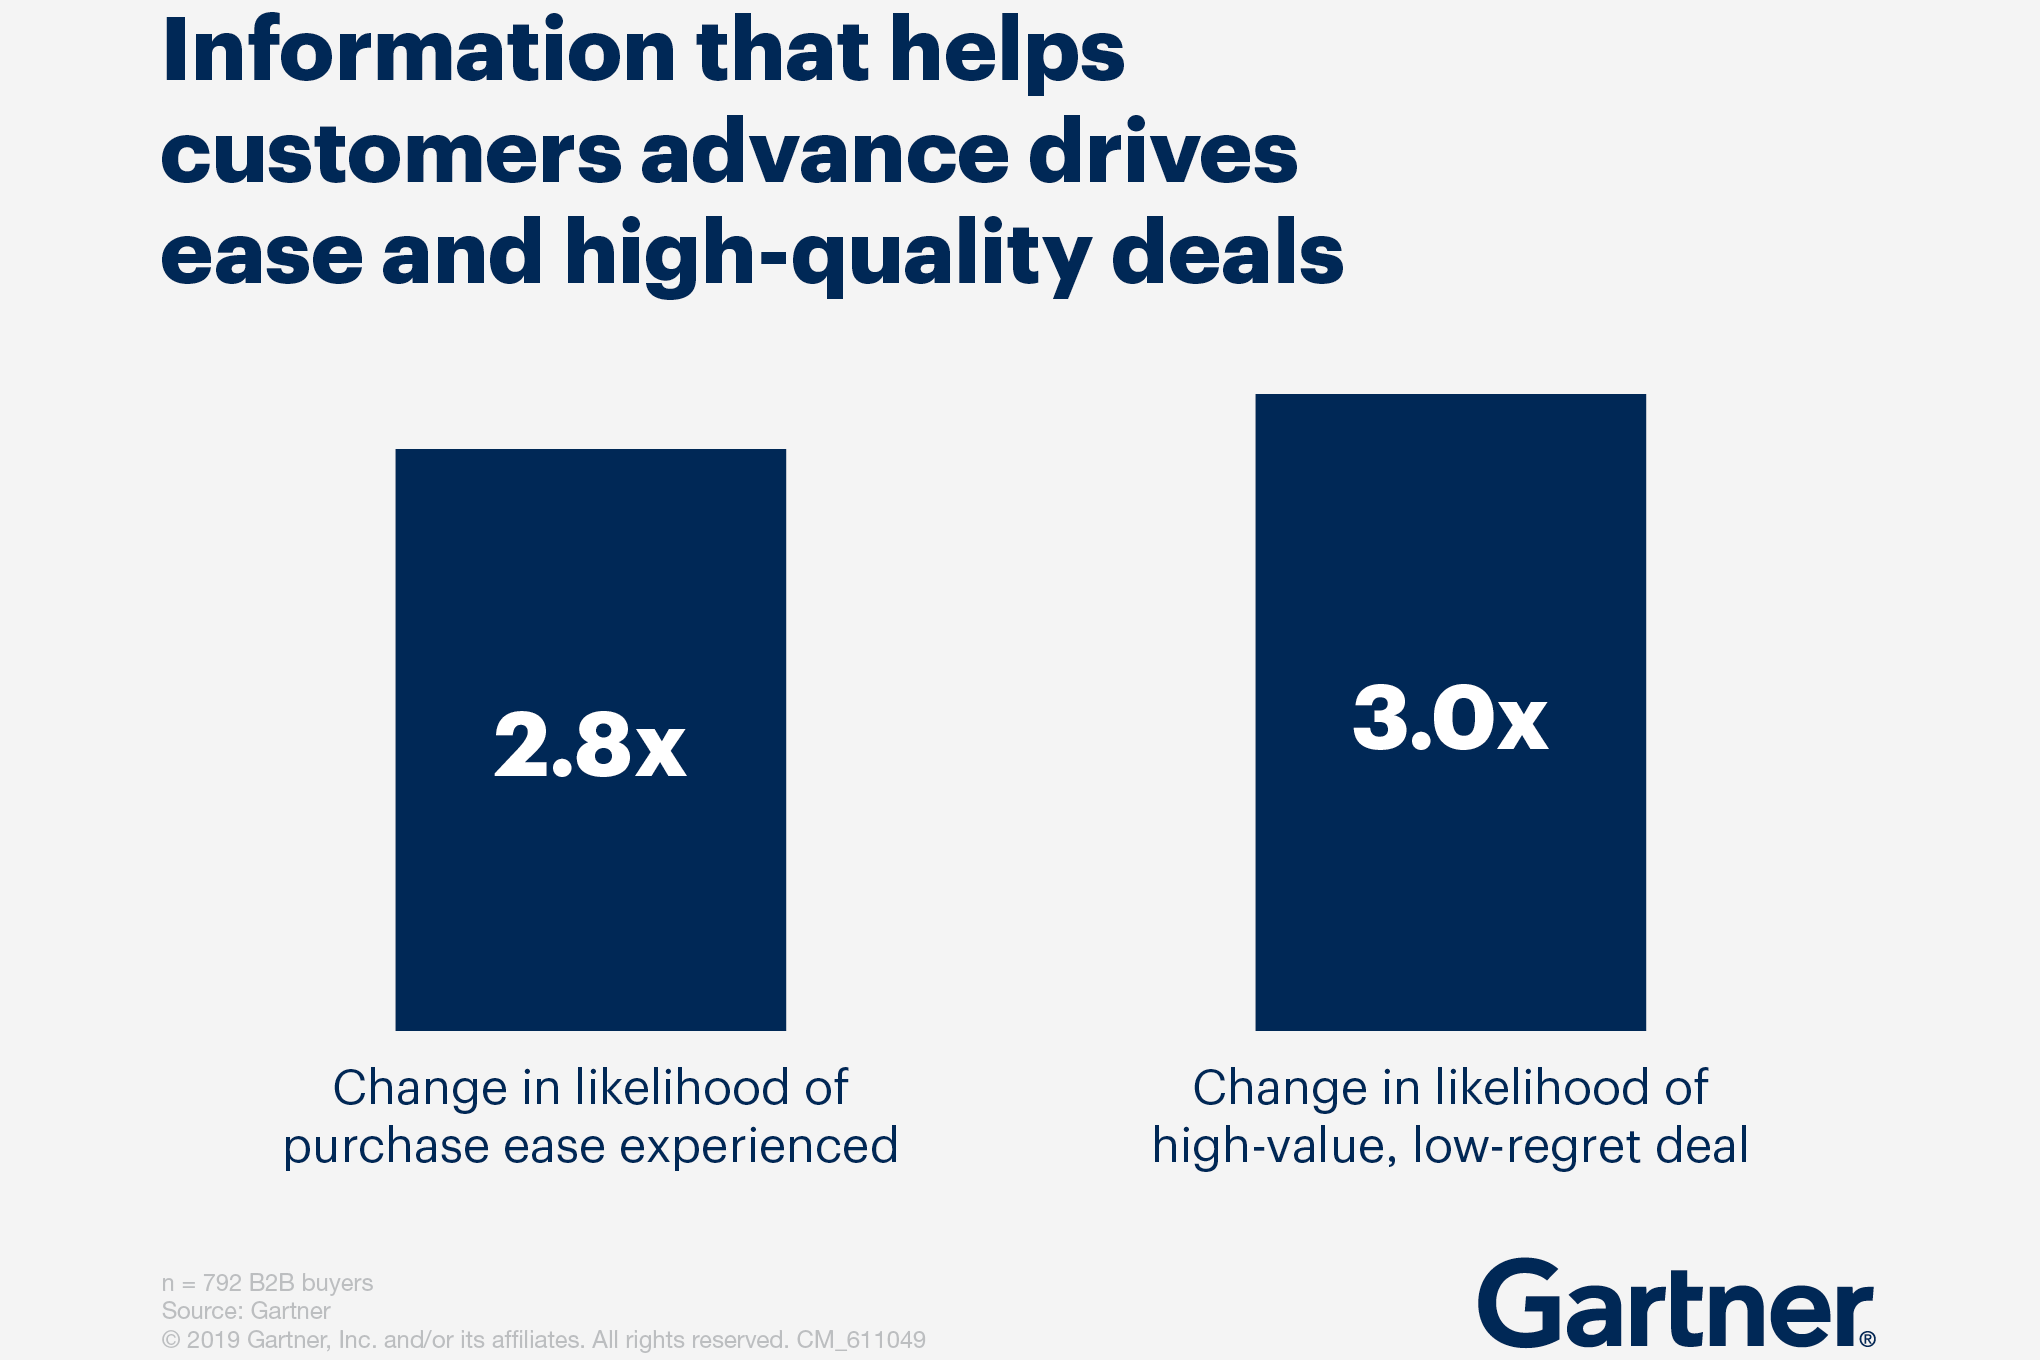 Information that helps customers advance drives high quality deals